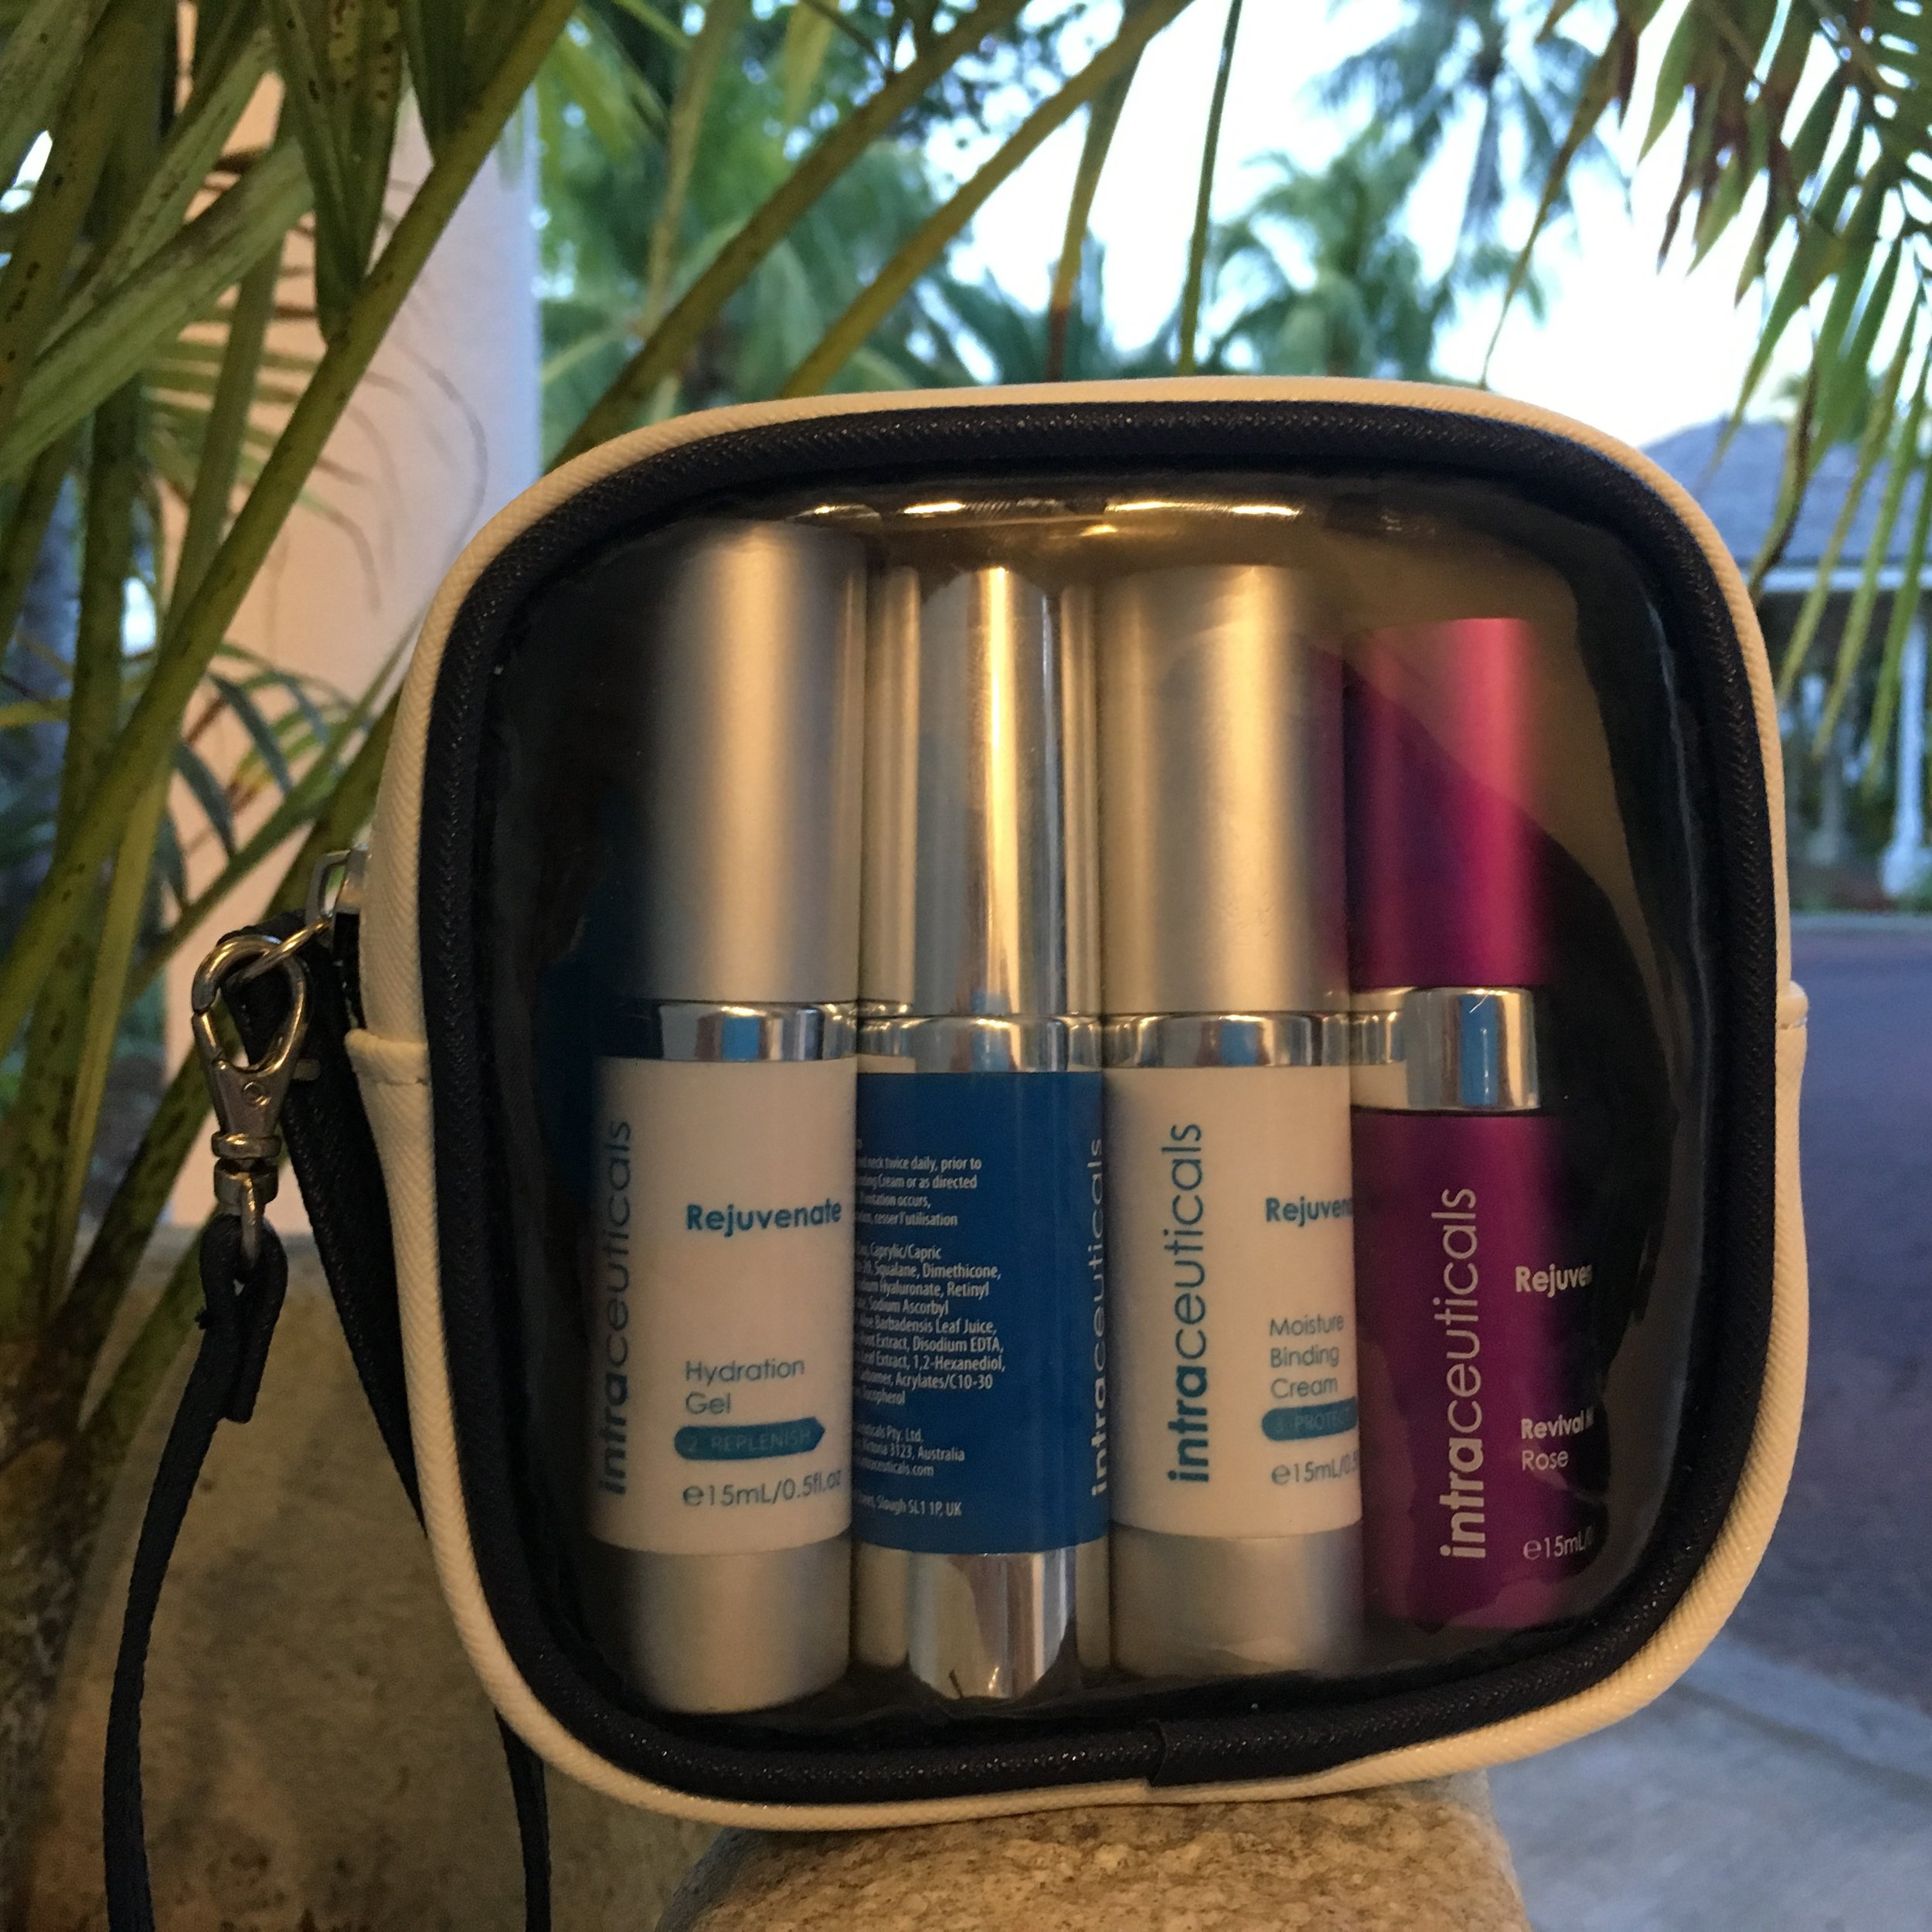 Handy travelling companion: intraceuticals